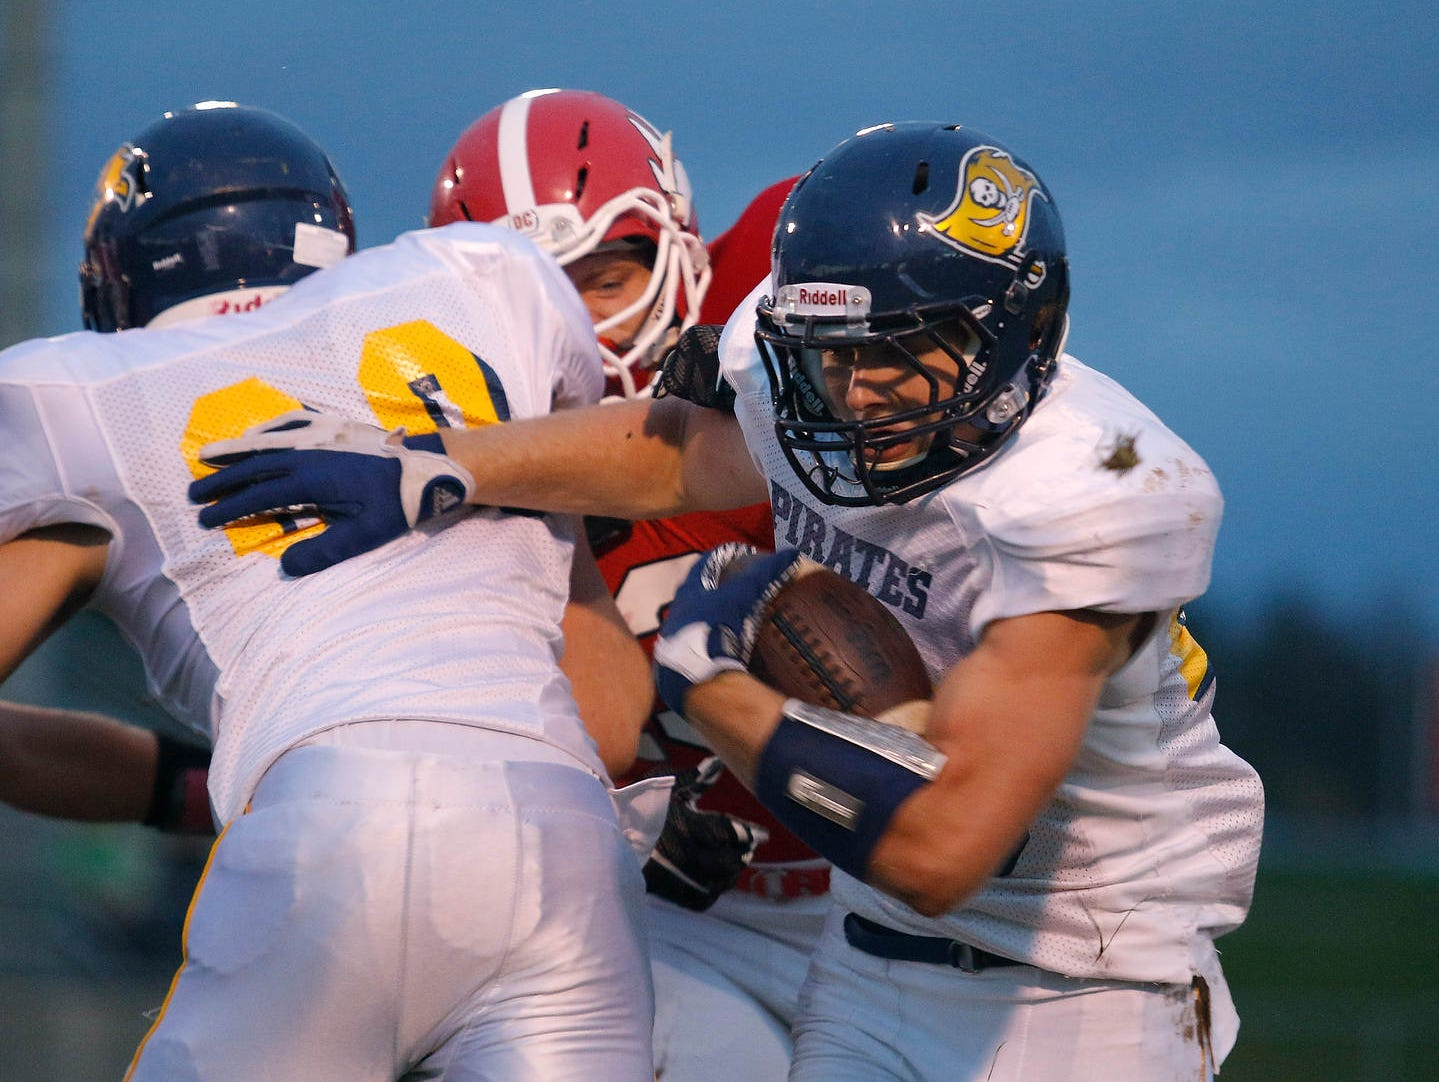 Pewamo-Westphalia's Jared Smith, right, rushes against Laingsburg's Dan Harkness Friday, Oct. 9, 2015, in Laingsburg, Mich. Pewamo-Westphalia won 50-7.